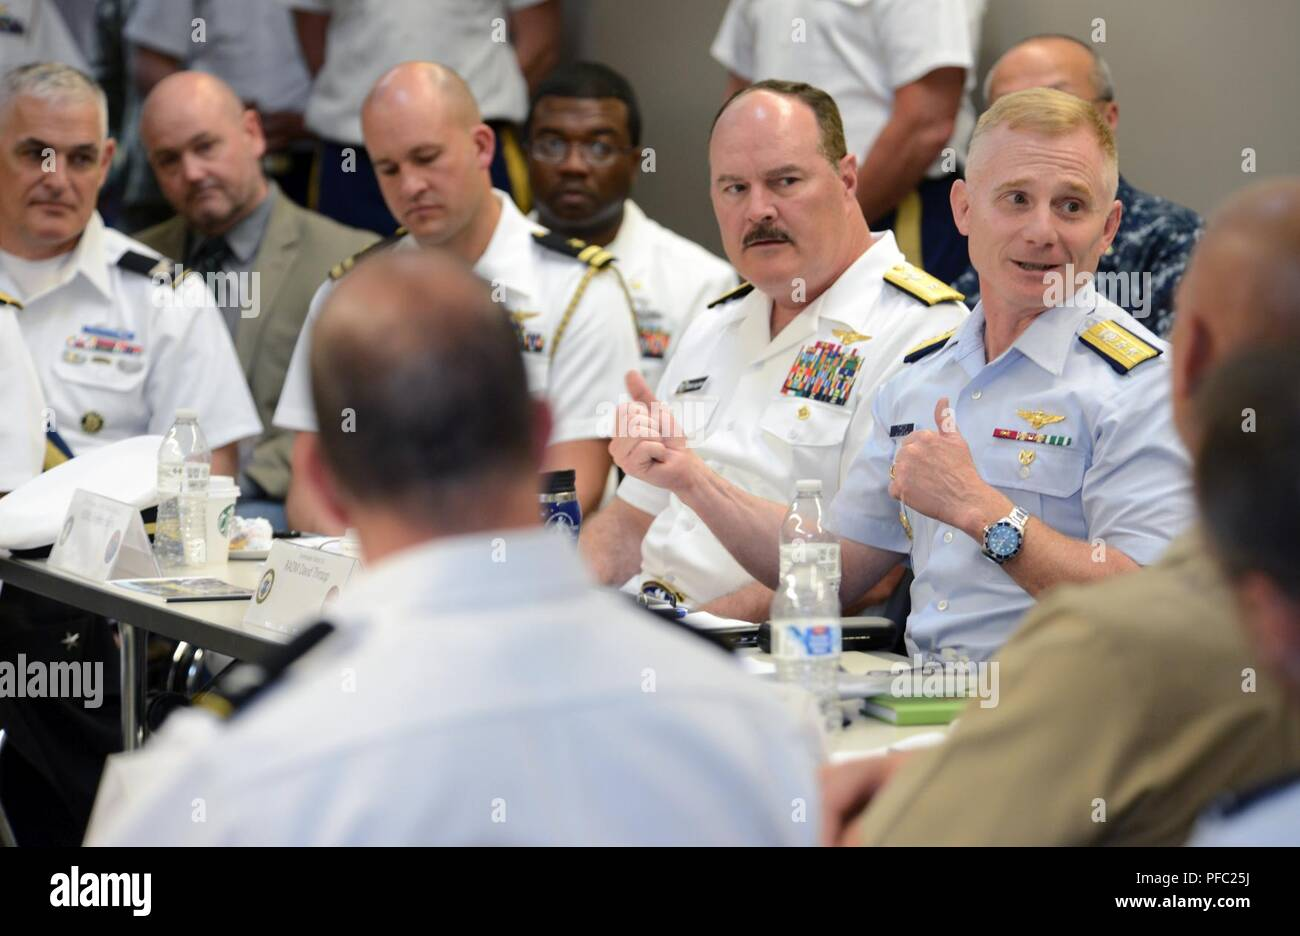 U.S. Coast Guard Rear Admiral David G. Throop (right), 13th Coast Guard District commander, offers final comments and remarks during the Portland Rose Festival Defense Support of Civil Authorities (DSCA) seminar held at Camp Withycombe, in Clackamas, Oregon, June 7, 2018. The one-day event brought together senior leadership from the Oregon and Washington National Guard, U.S. Navy, Coast Guard, and other civil emergency managers as they review the Cascadia Subduction Zone Planning. (National Guard - Stock Image